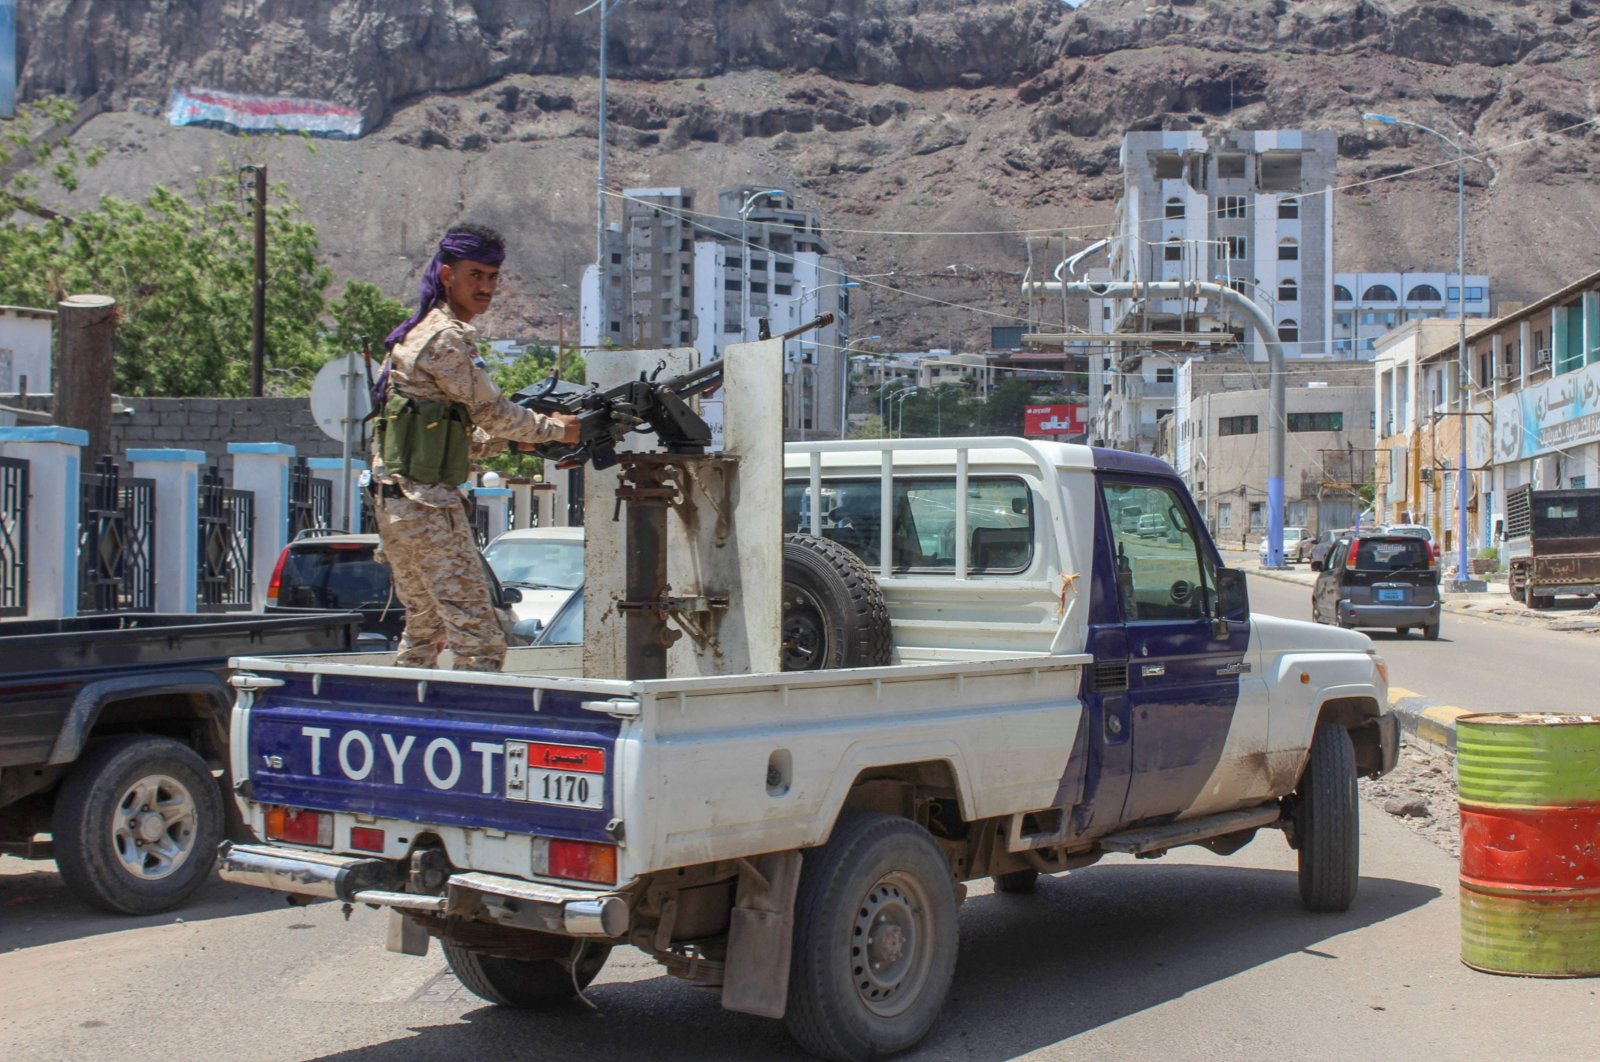 A fighter with Yemen's separatist Southern Transitional Council (STC) mans a gun in the back of a vehicle deploying in the southern city of Aden, April 26, 2020. (AFP Photo)